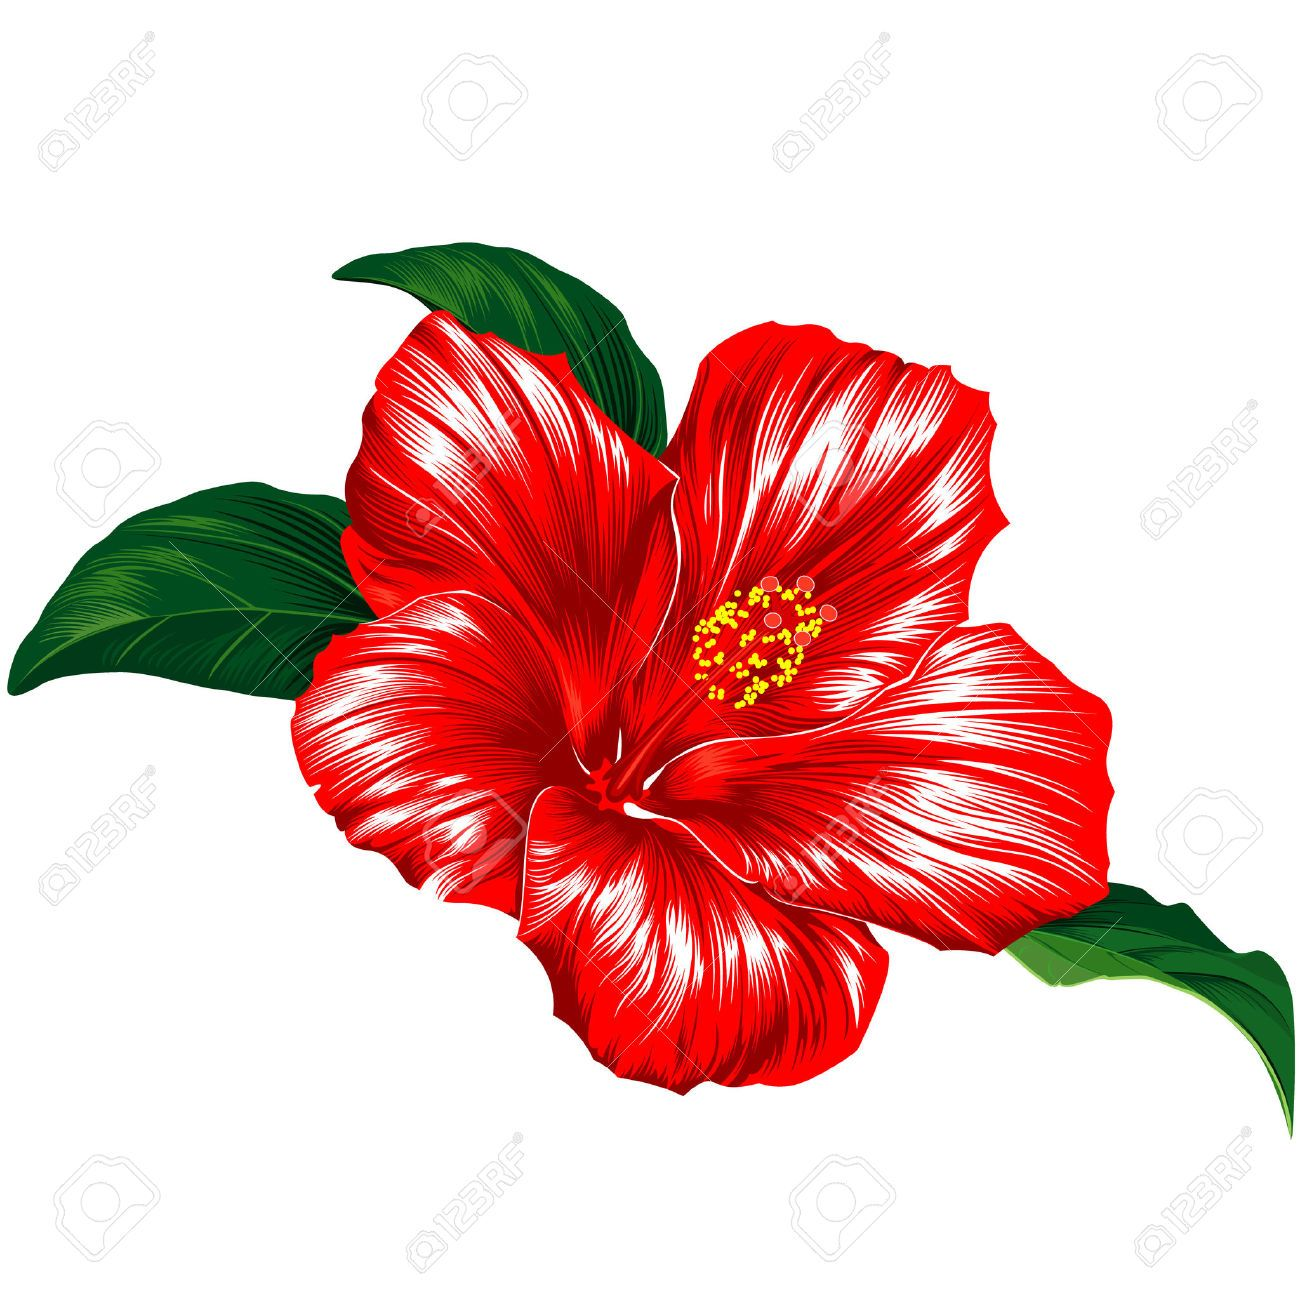 Hibiscus clipart google search hawaiian flowers tattoo ideas red hibiscus flower blossom with leaves izmirmasajfo Choice Image